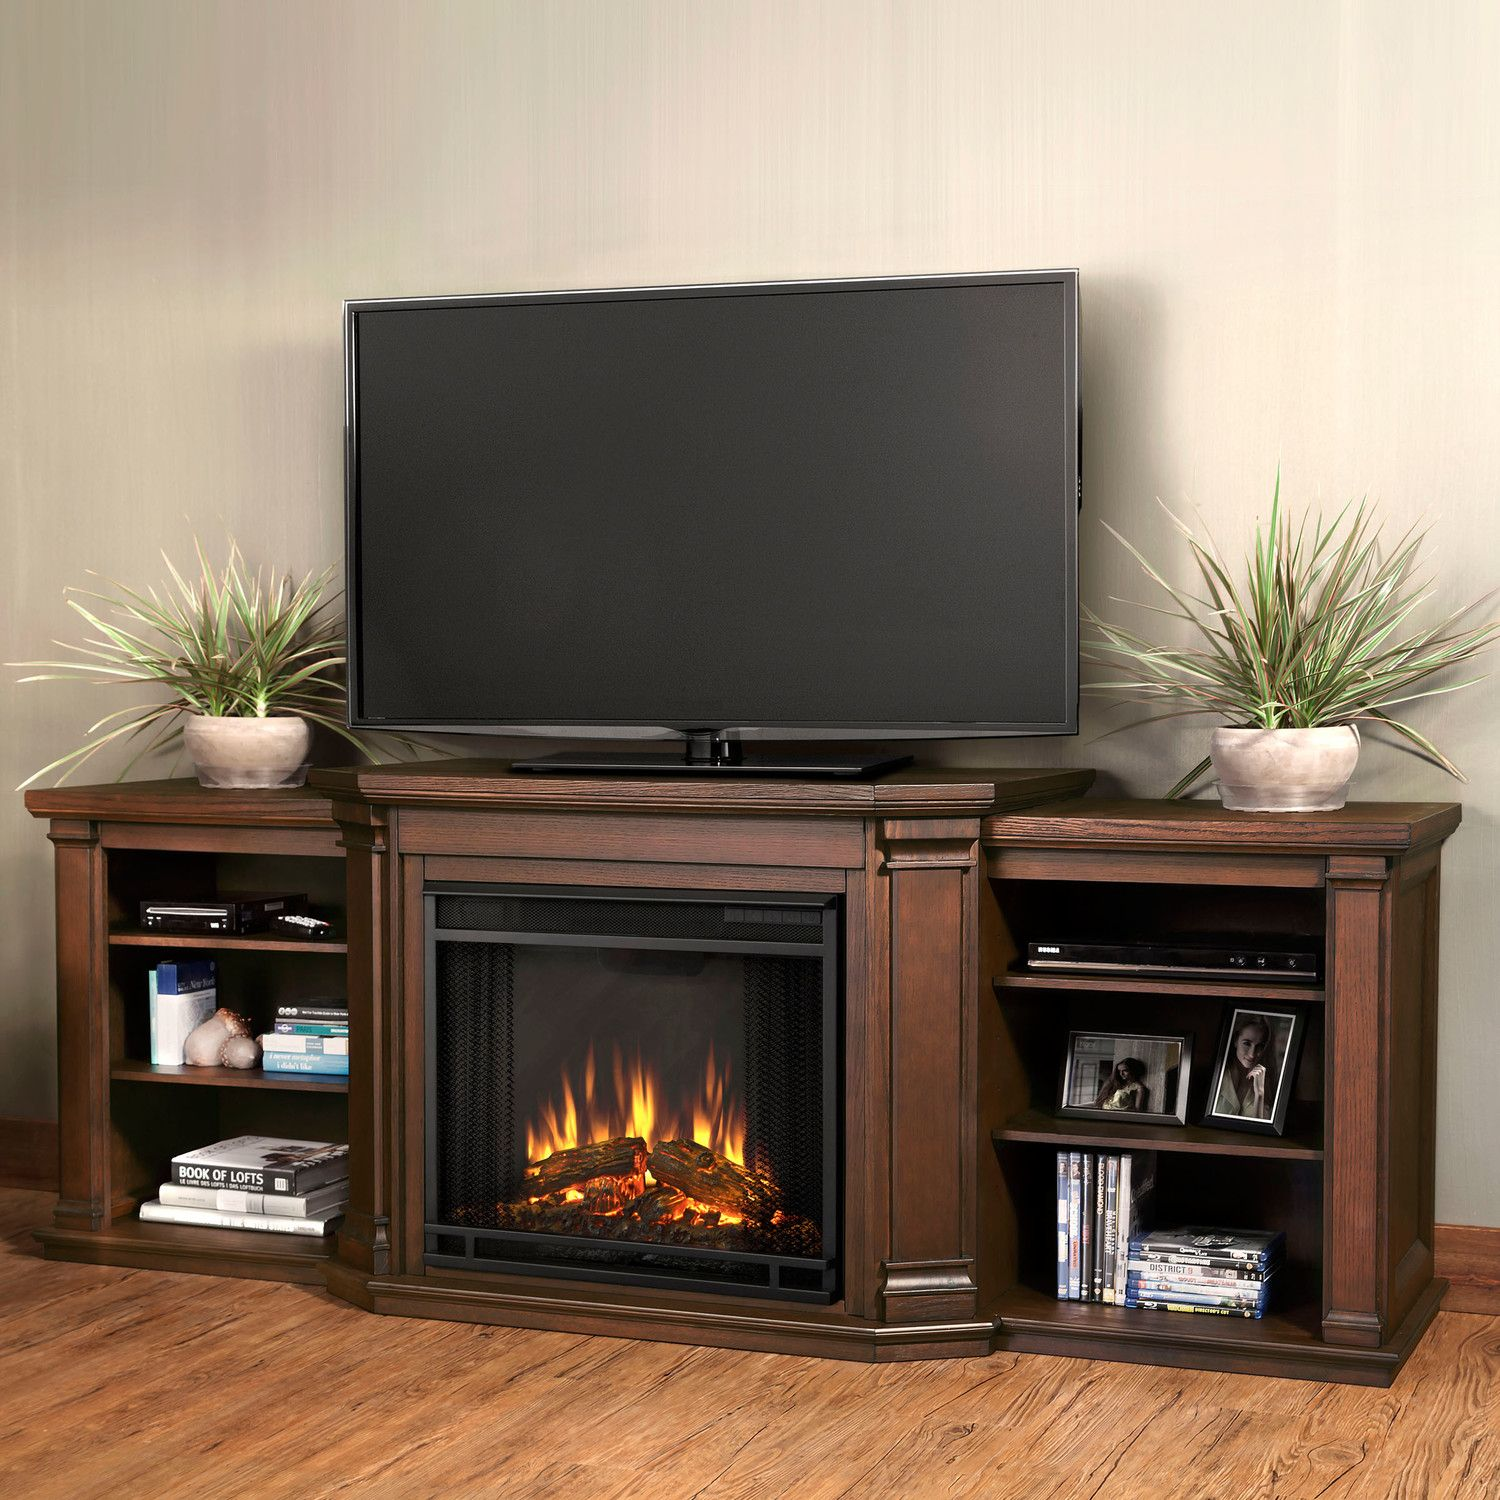 tv stands with fireplaces built in Google Search